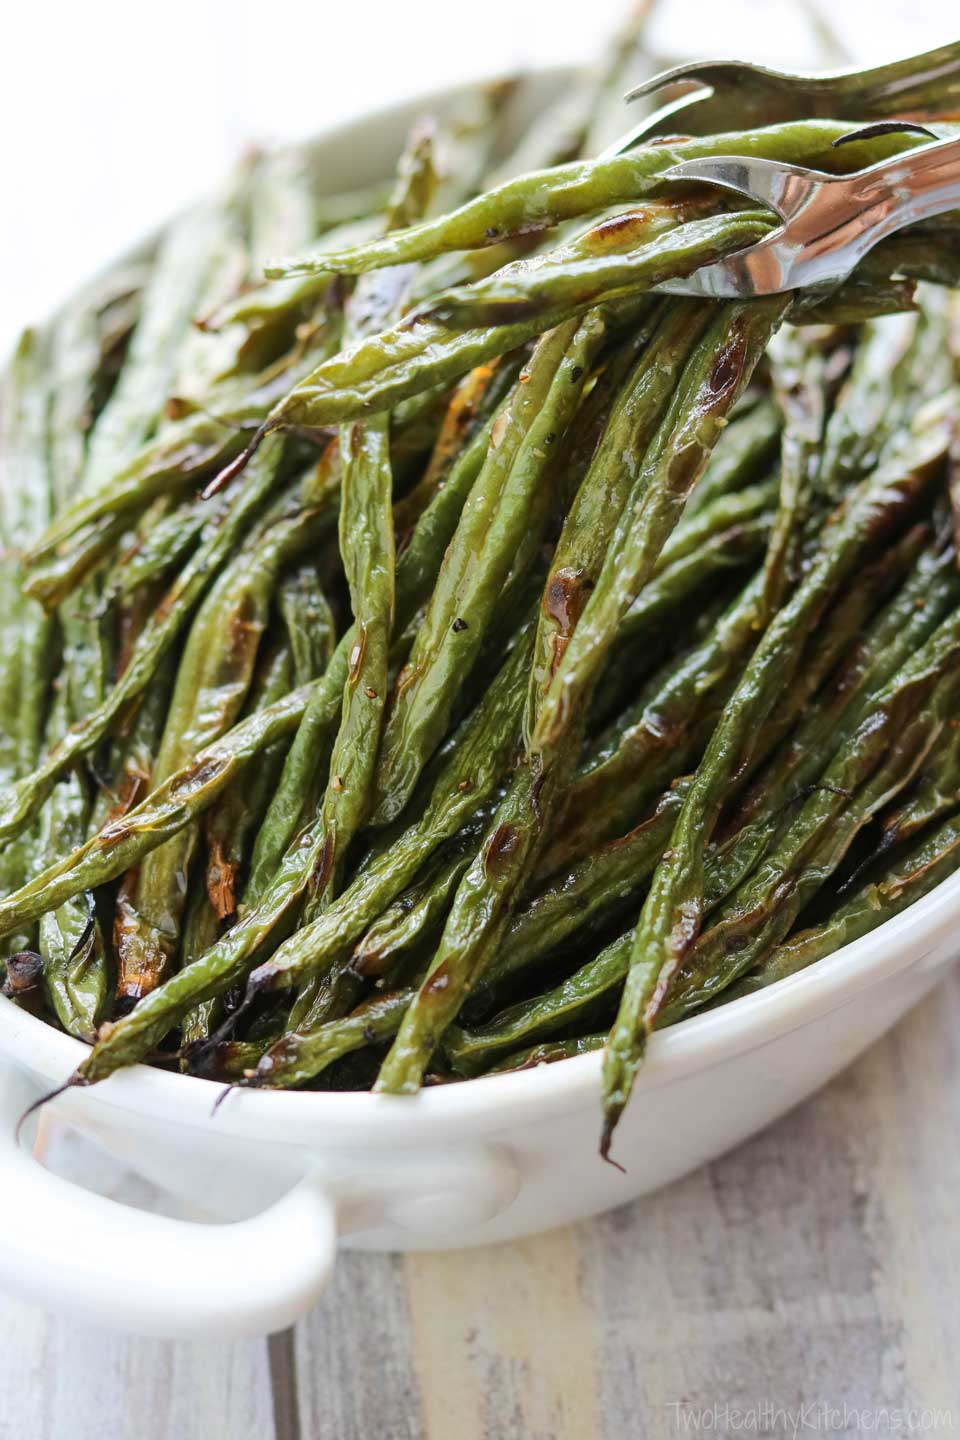 This green bean recipe is a beautiful, easy side dish!